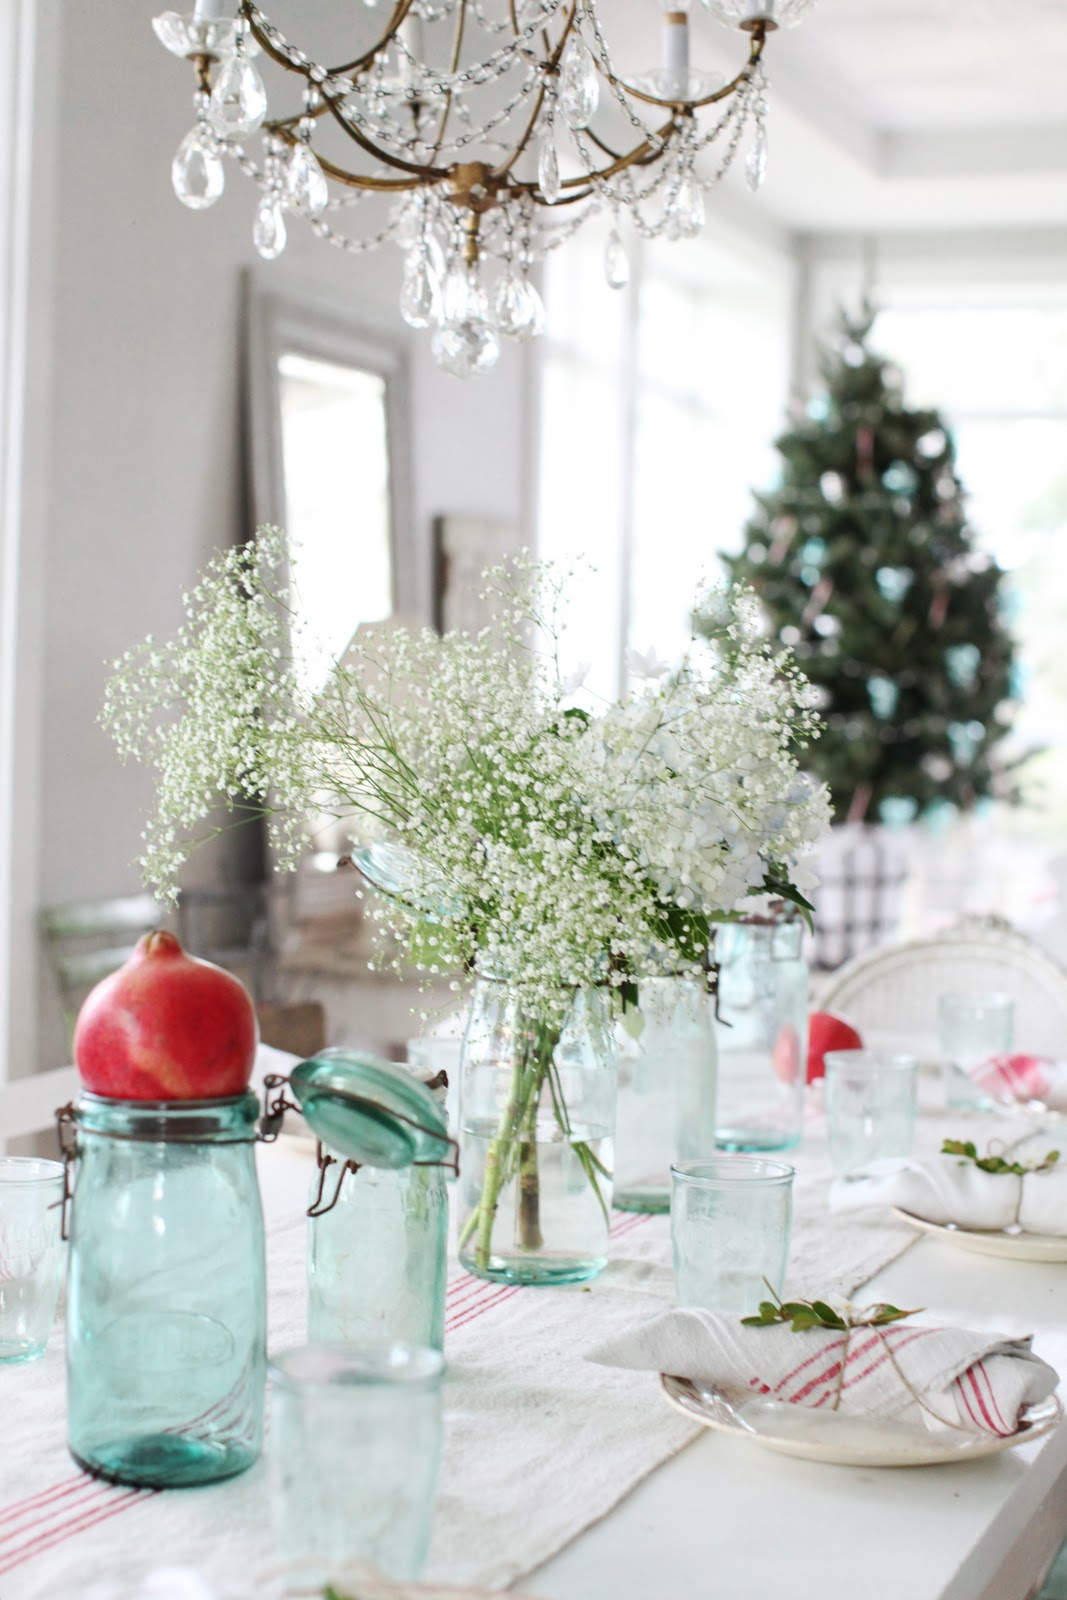 Simple Christmas Table Setting Ideas - Castrophotos